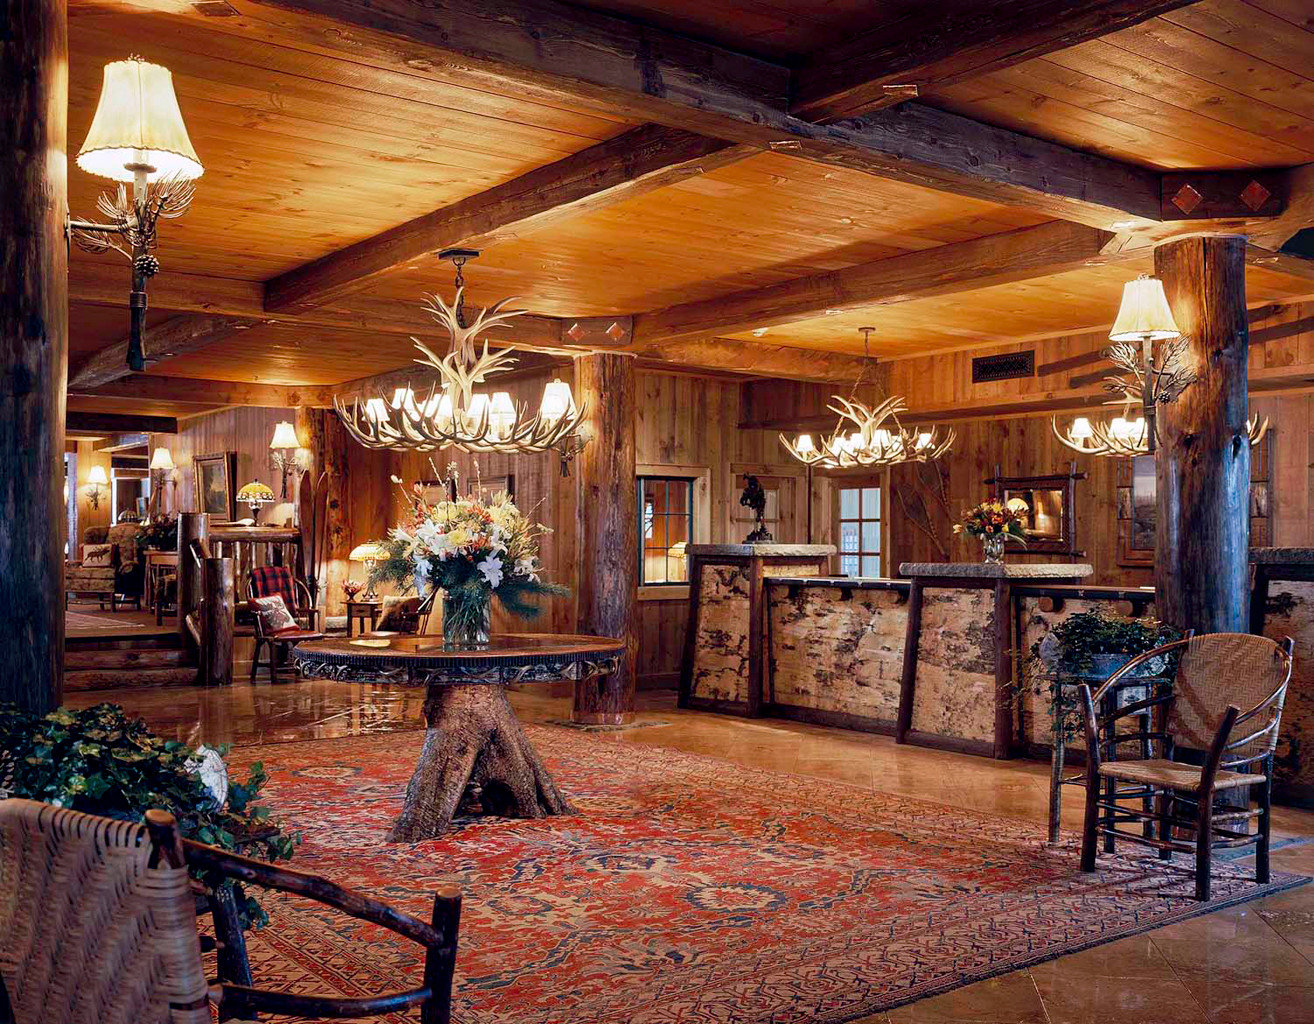 Living Lodge Lounge Luxury Romantic Rustic Trip Ideas ceiling indoor room estate home Lobby log cabin wood interior design restaurant furniture living room area dining room several